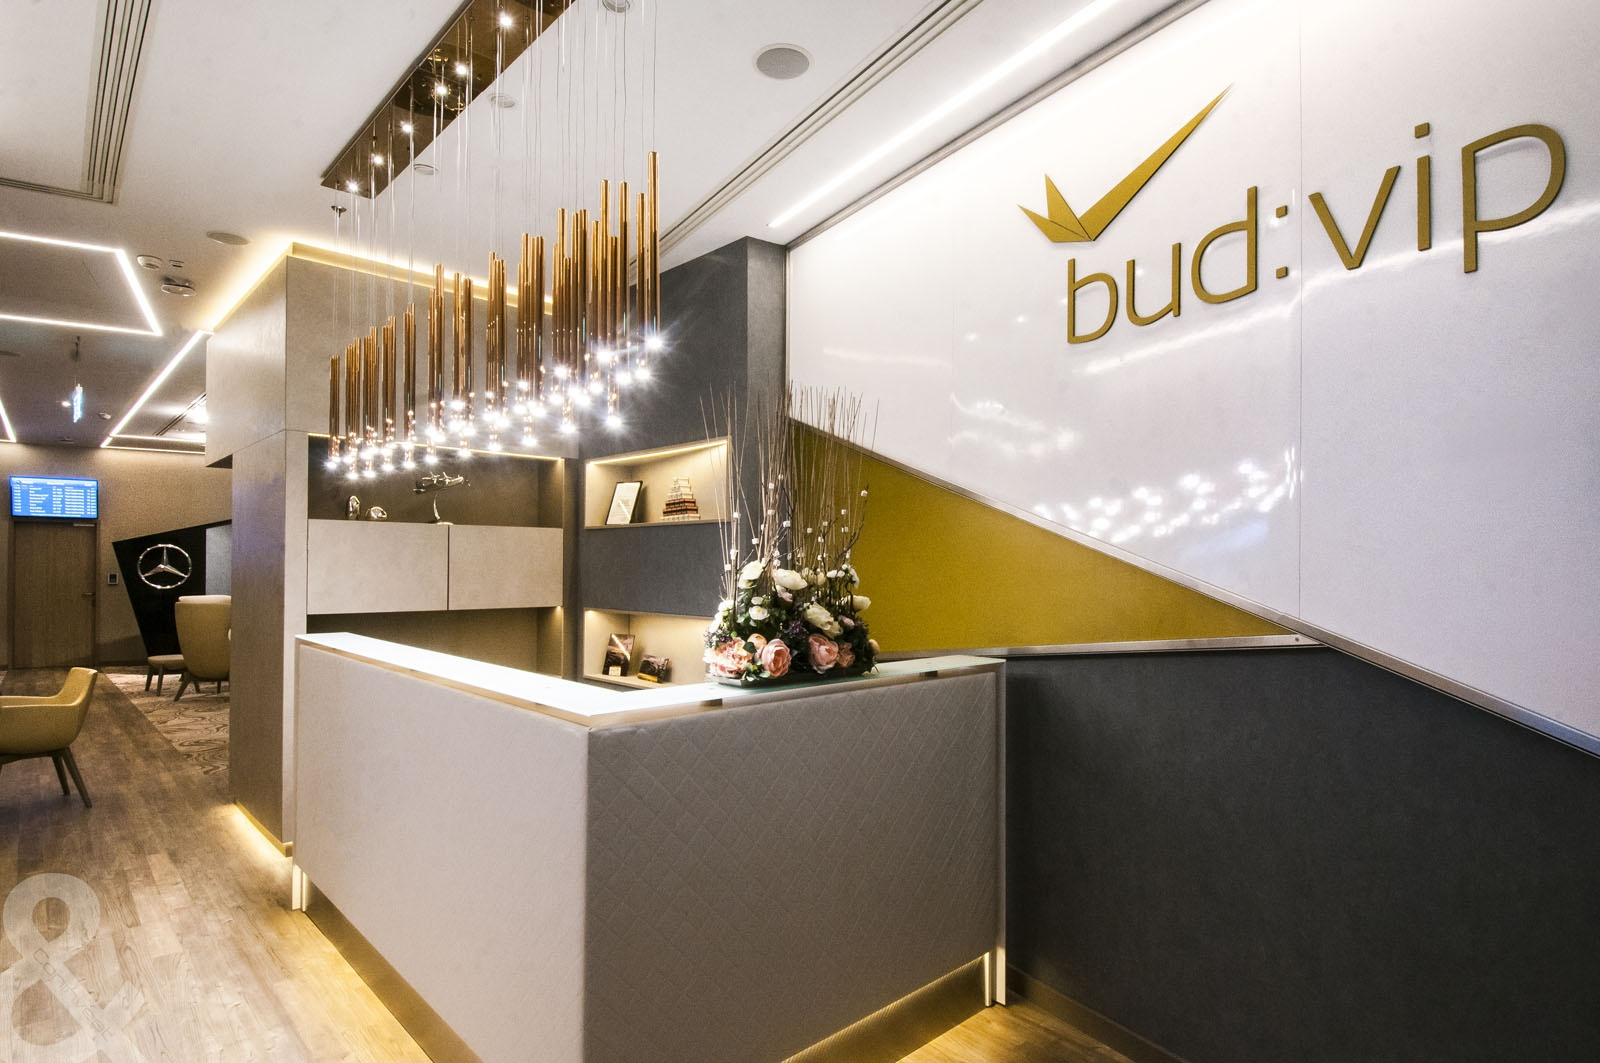 VIP Services @ Budapest Airport - bud:vip